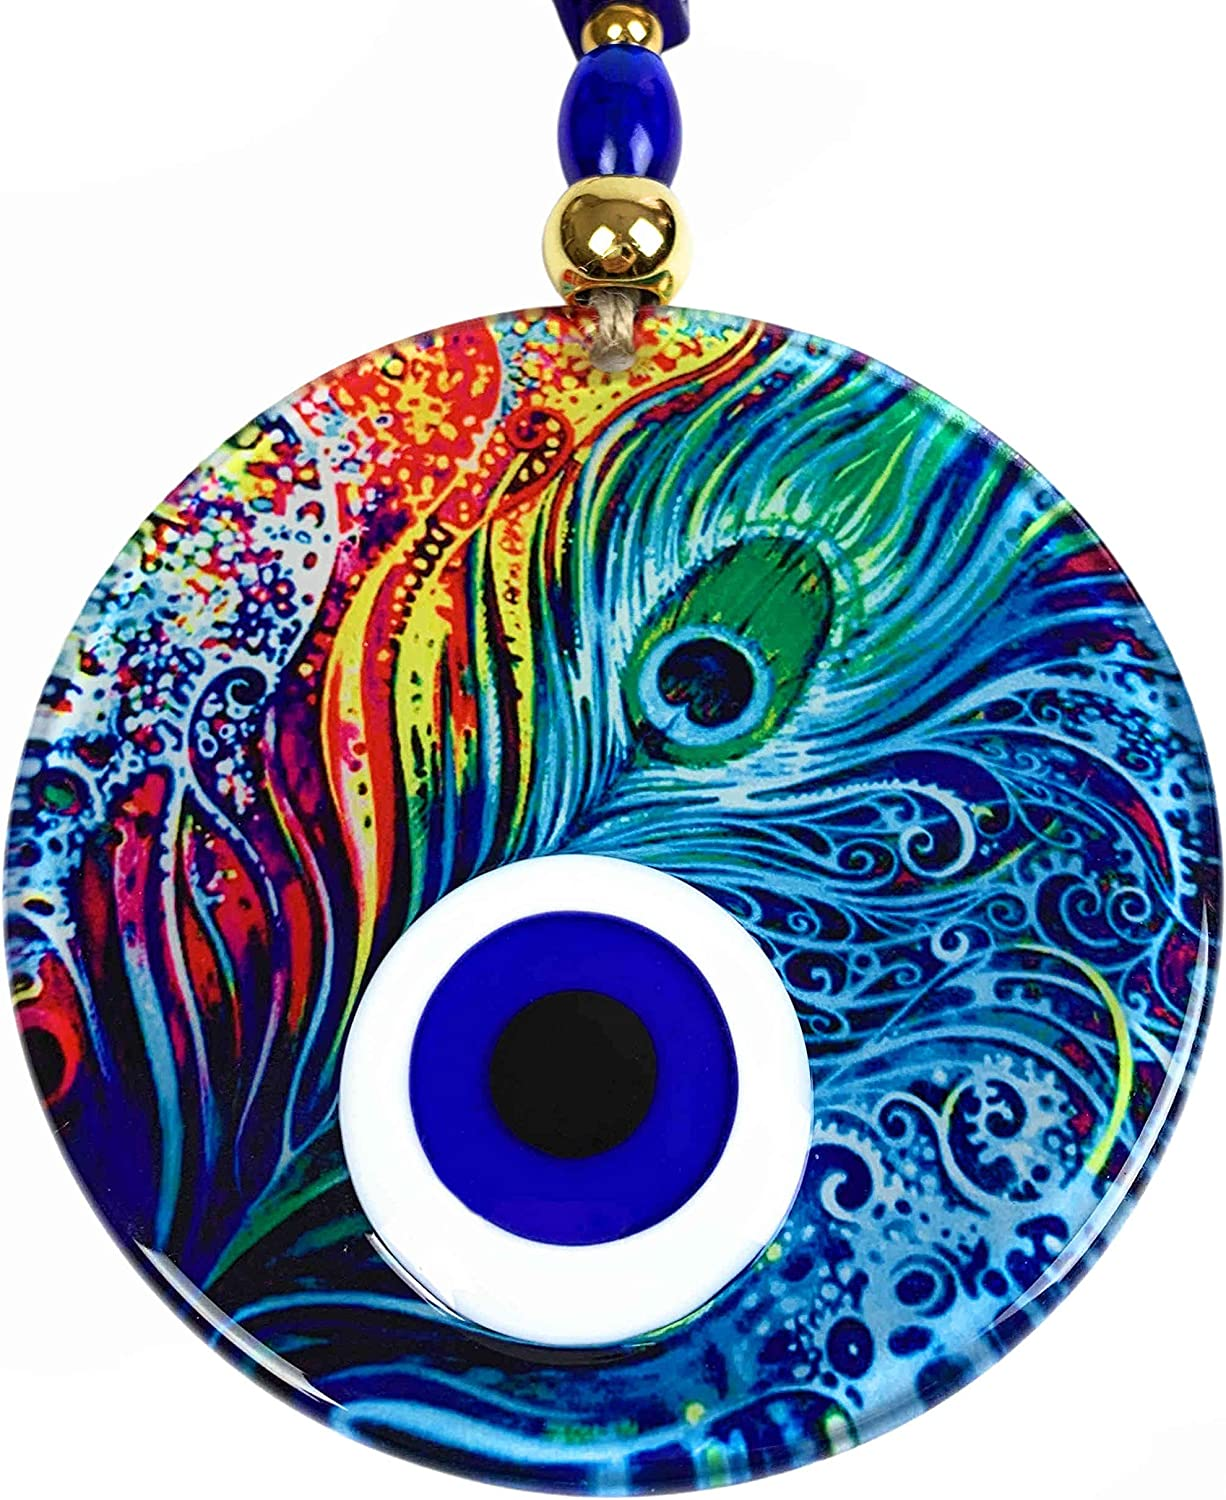 BCS Amazing Colorful Evil Eye Decor Home Wall Hanging 4.7